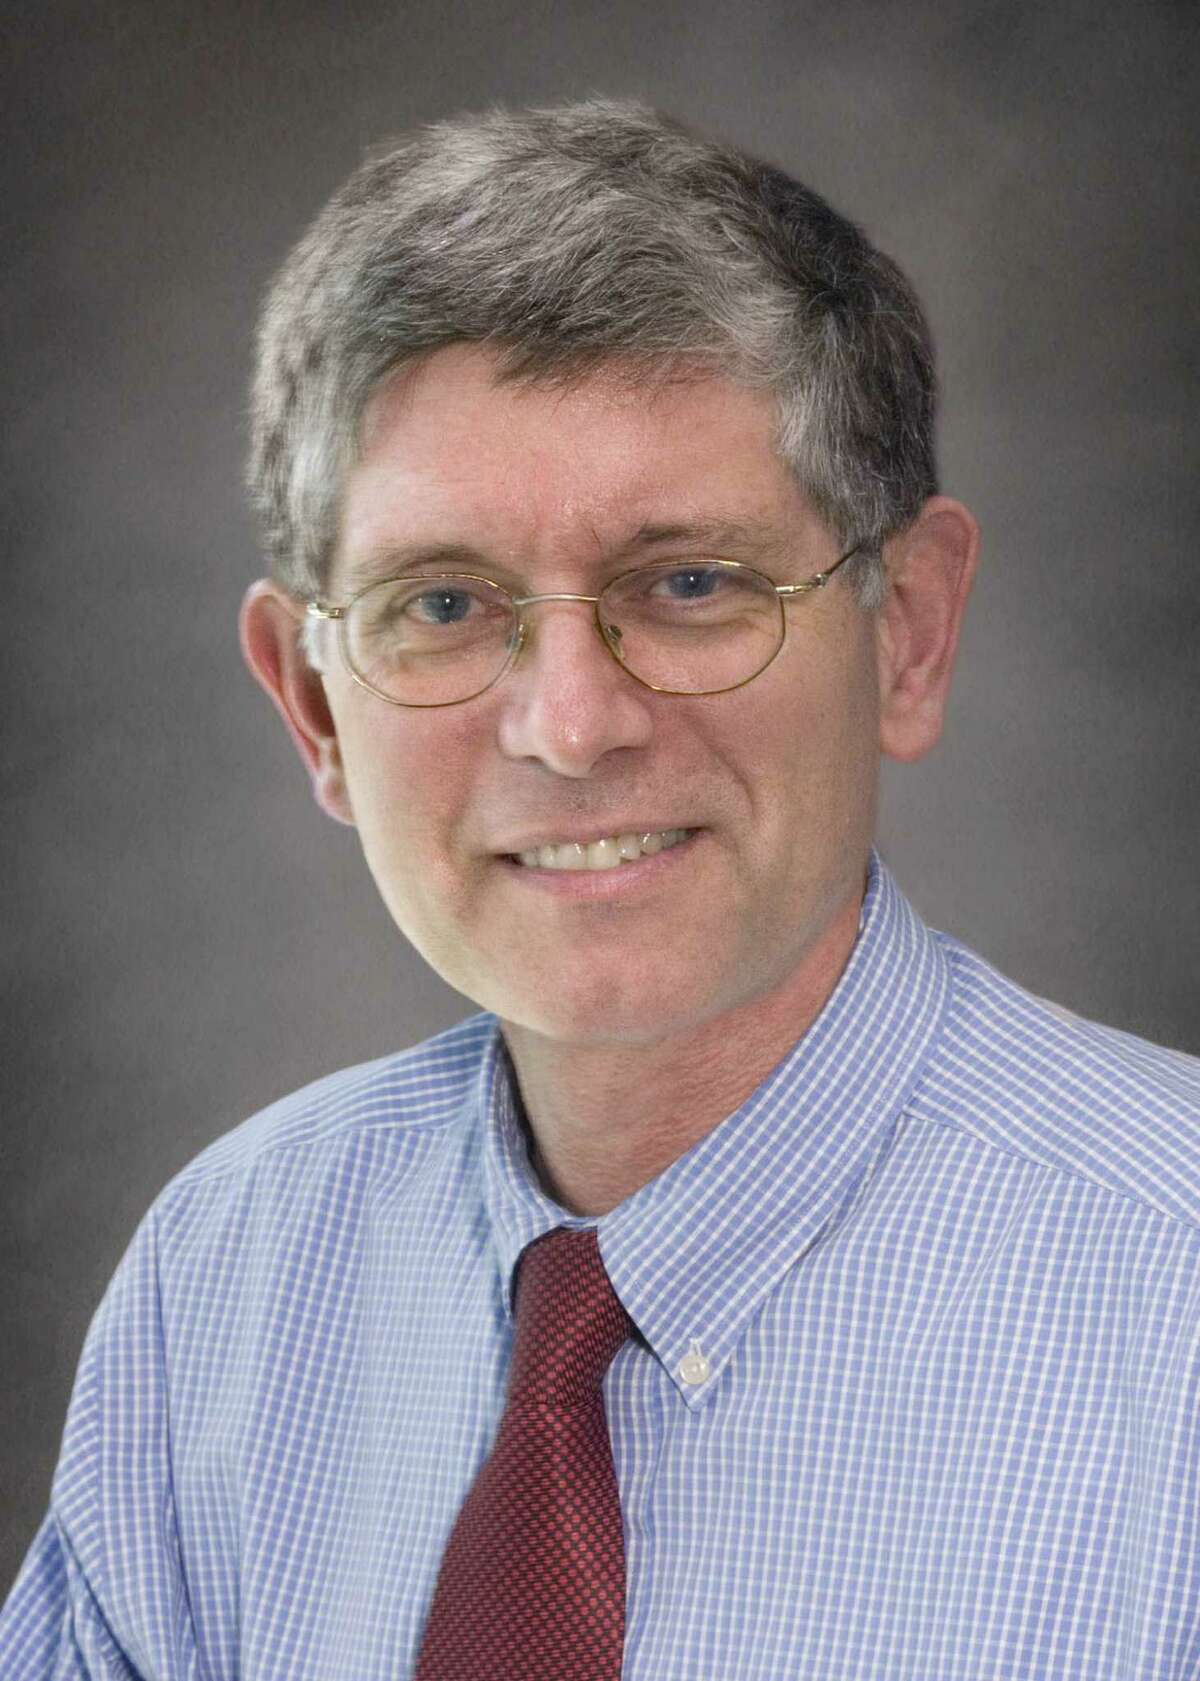 Dr. Ian M. Thompson is director of the Cancer Therapy & Research Center at the UT Health Science Center.